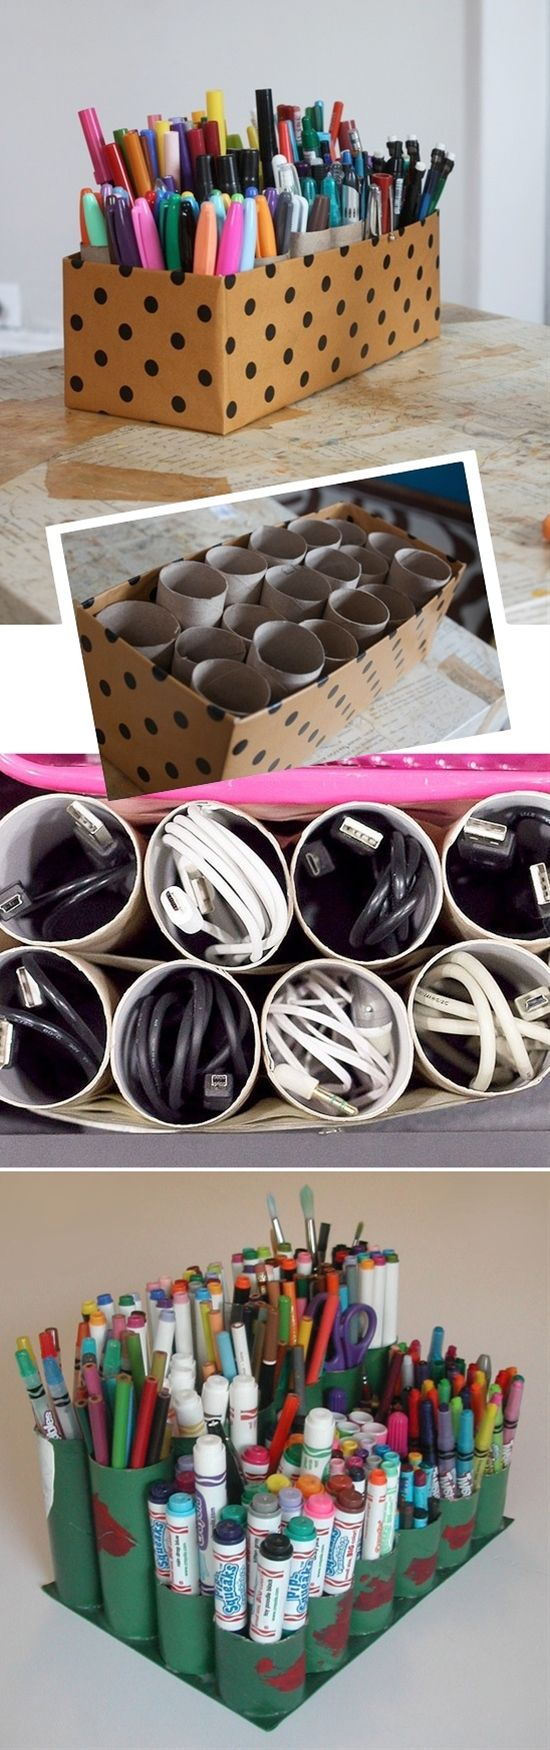 Toilet Paper Roll Storage Ideas - Click image to find more diy & crafts Pinterest pins